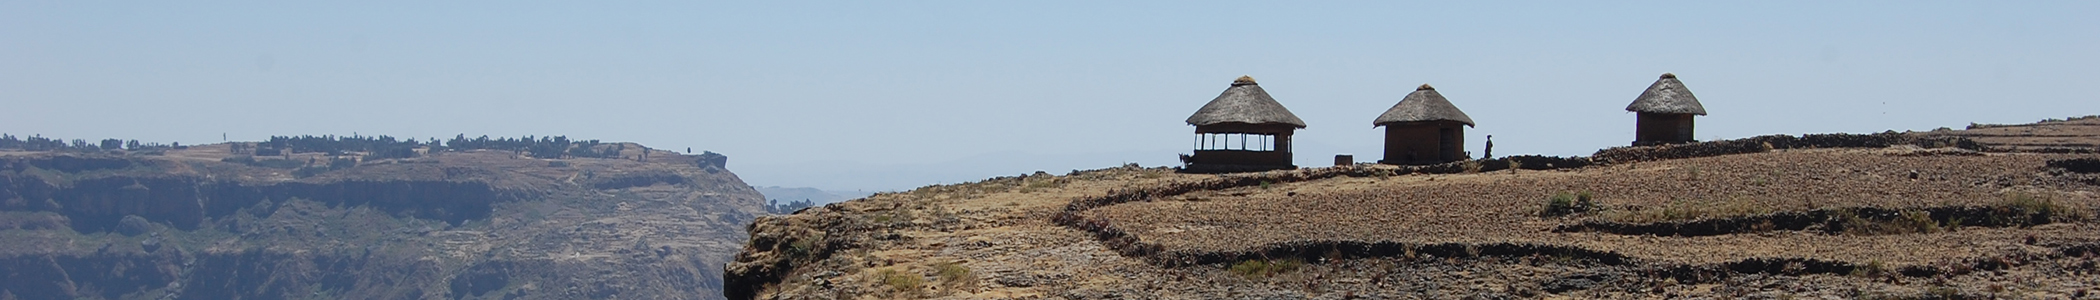 Houses on an Ethiopian Mountain